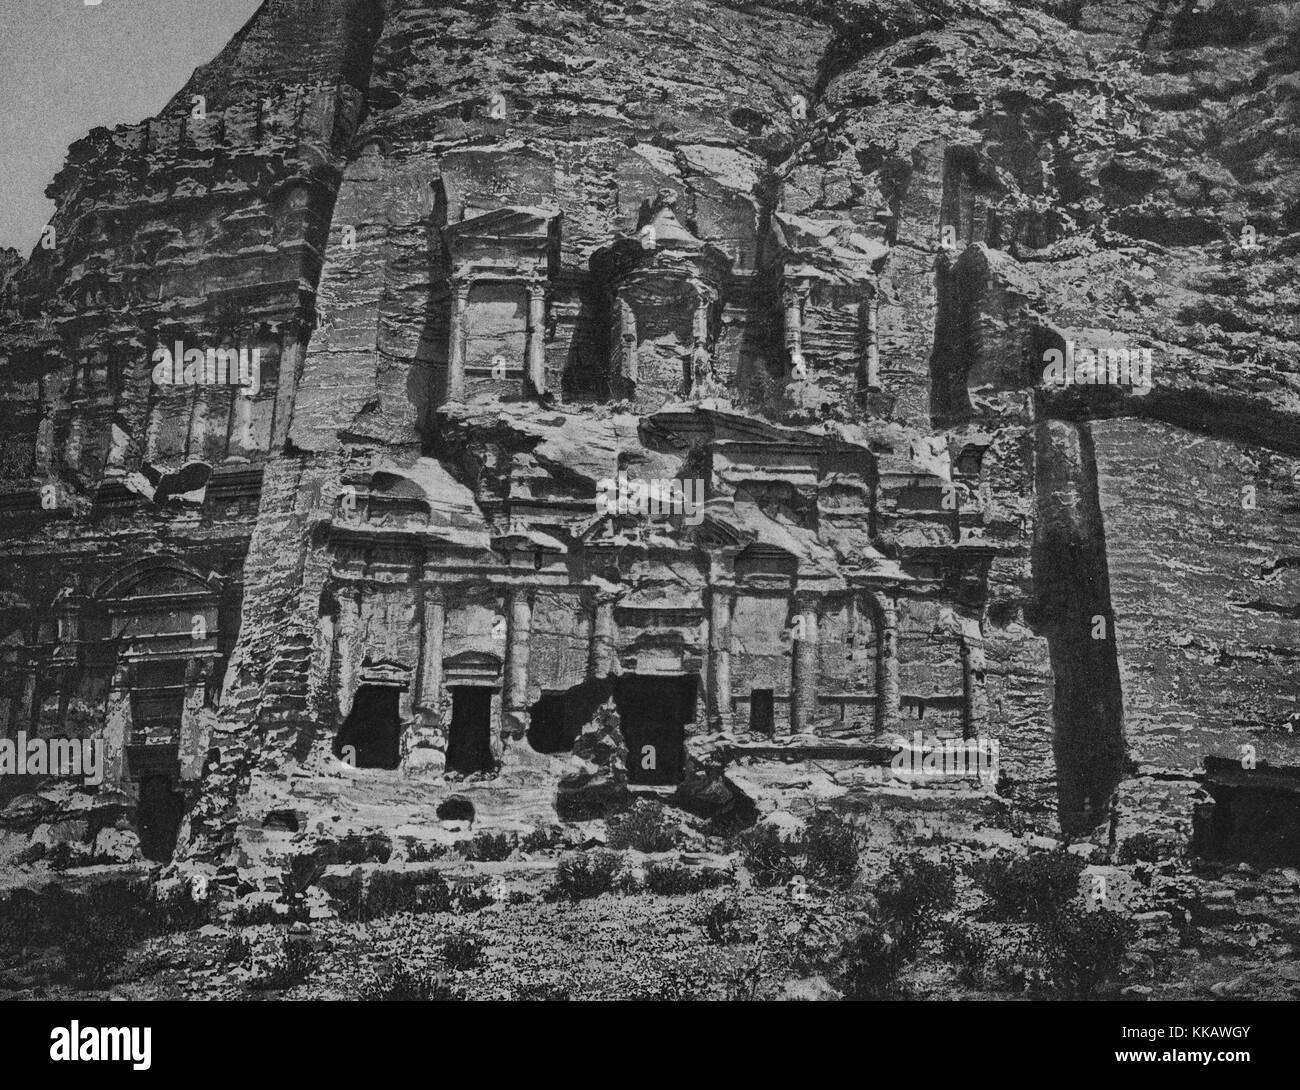 The rock-cut architecture in the ancient city of Petra, this section part of a series of tombs in the southern part - Stock Image